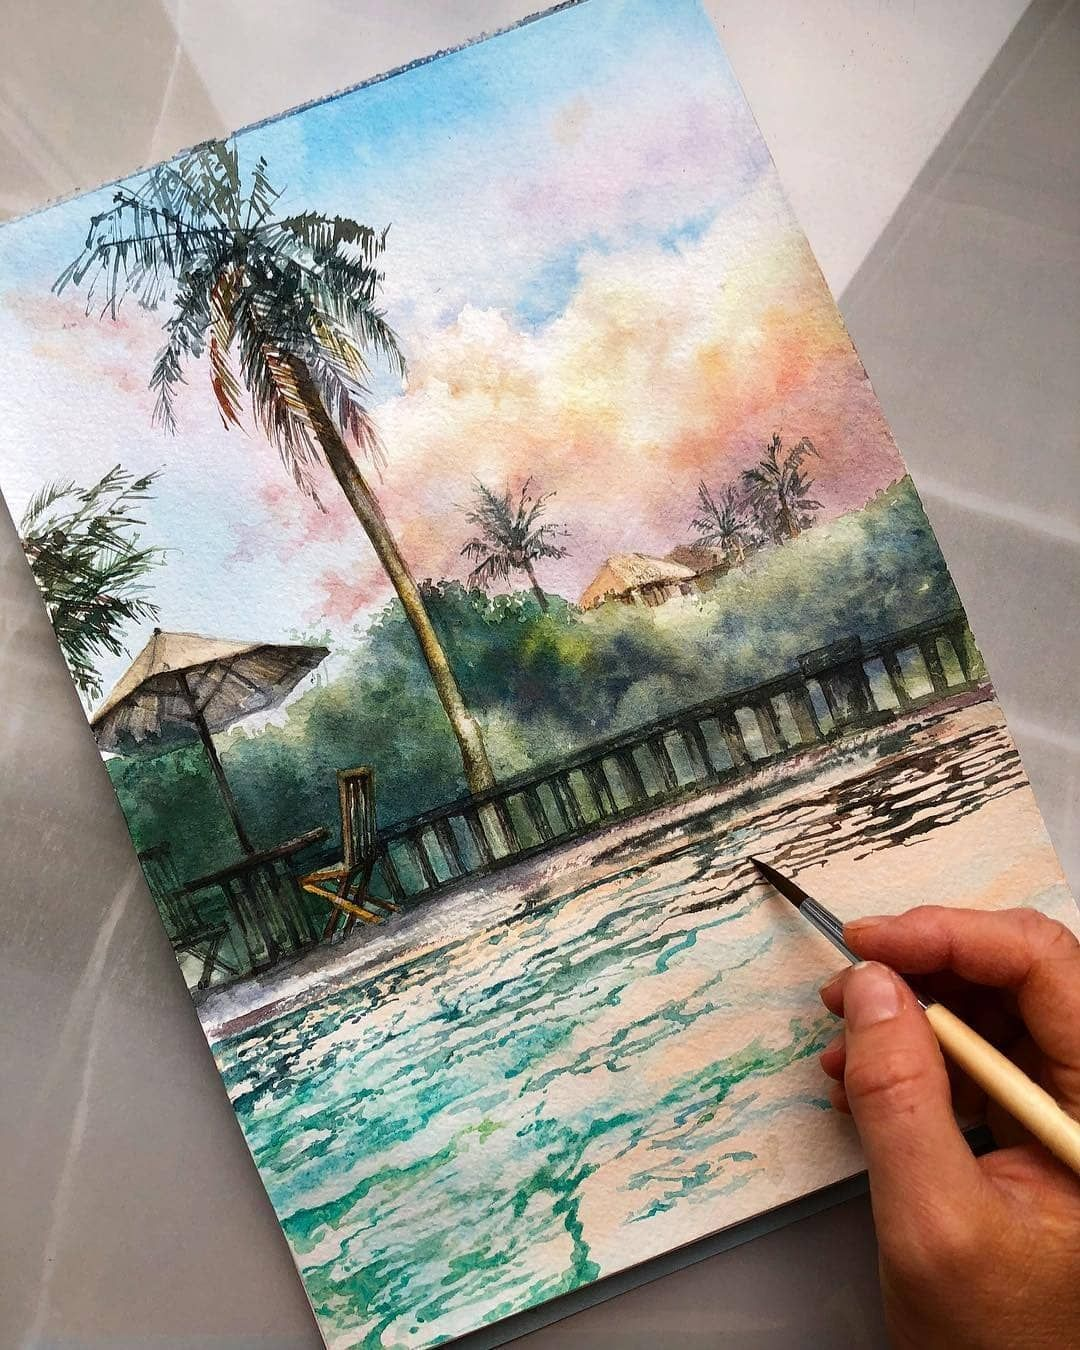 Top Watercolor Gallery On Instagram More Art Every Day On